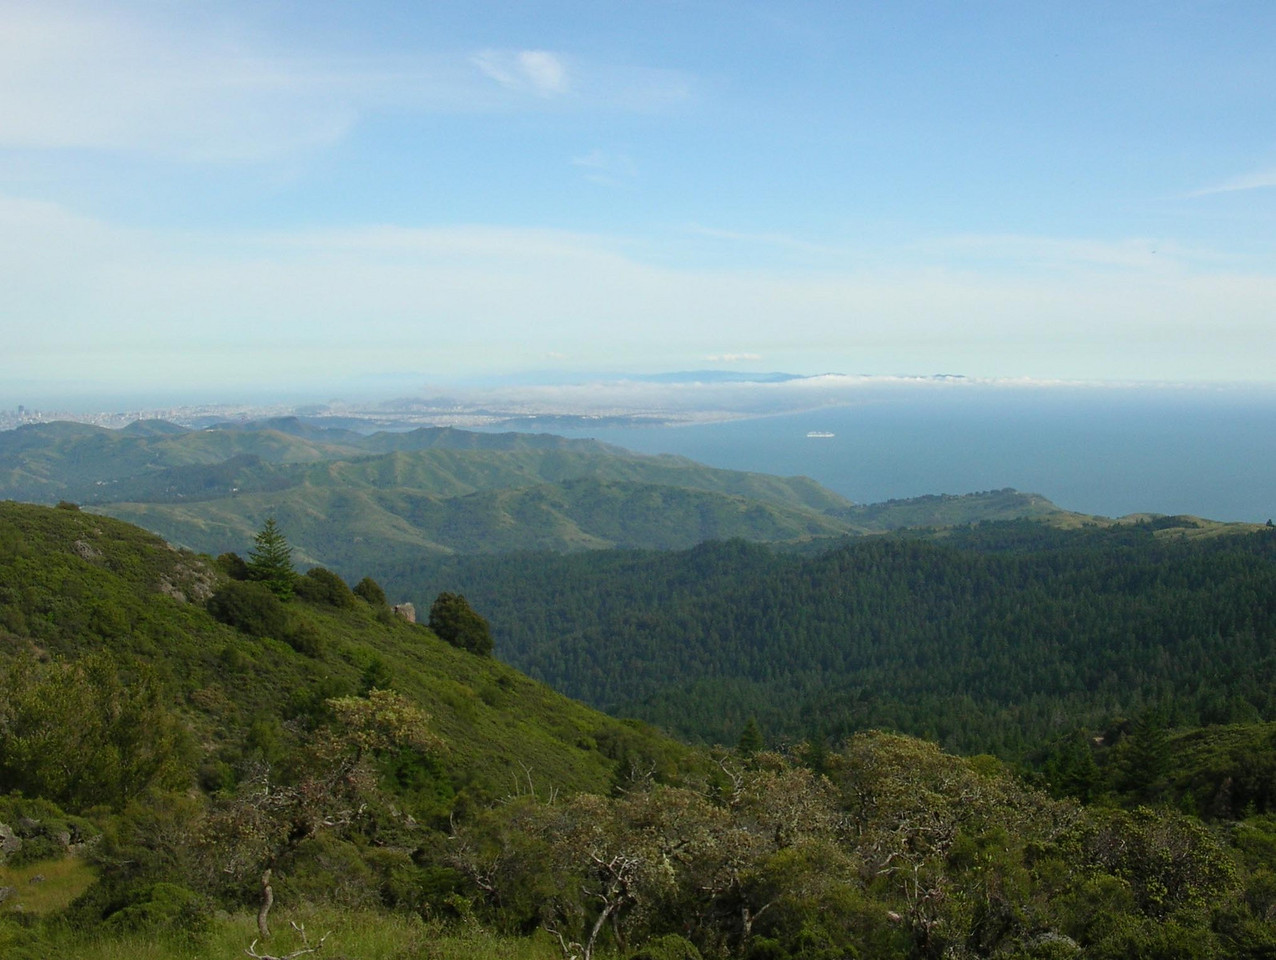 Mt. Tam (with San Francisco in the distance) - 2005